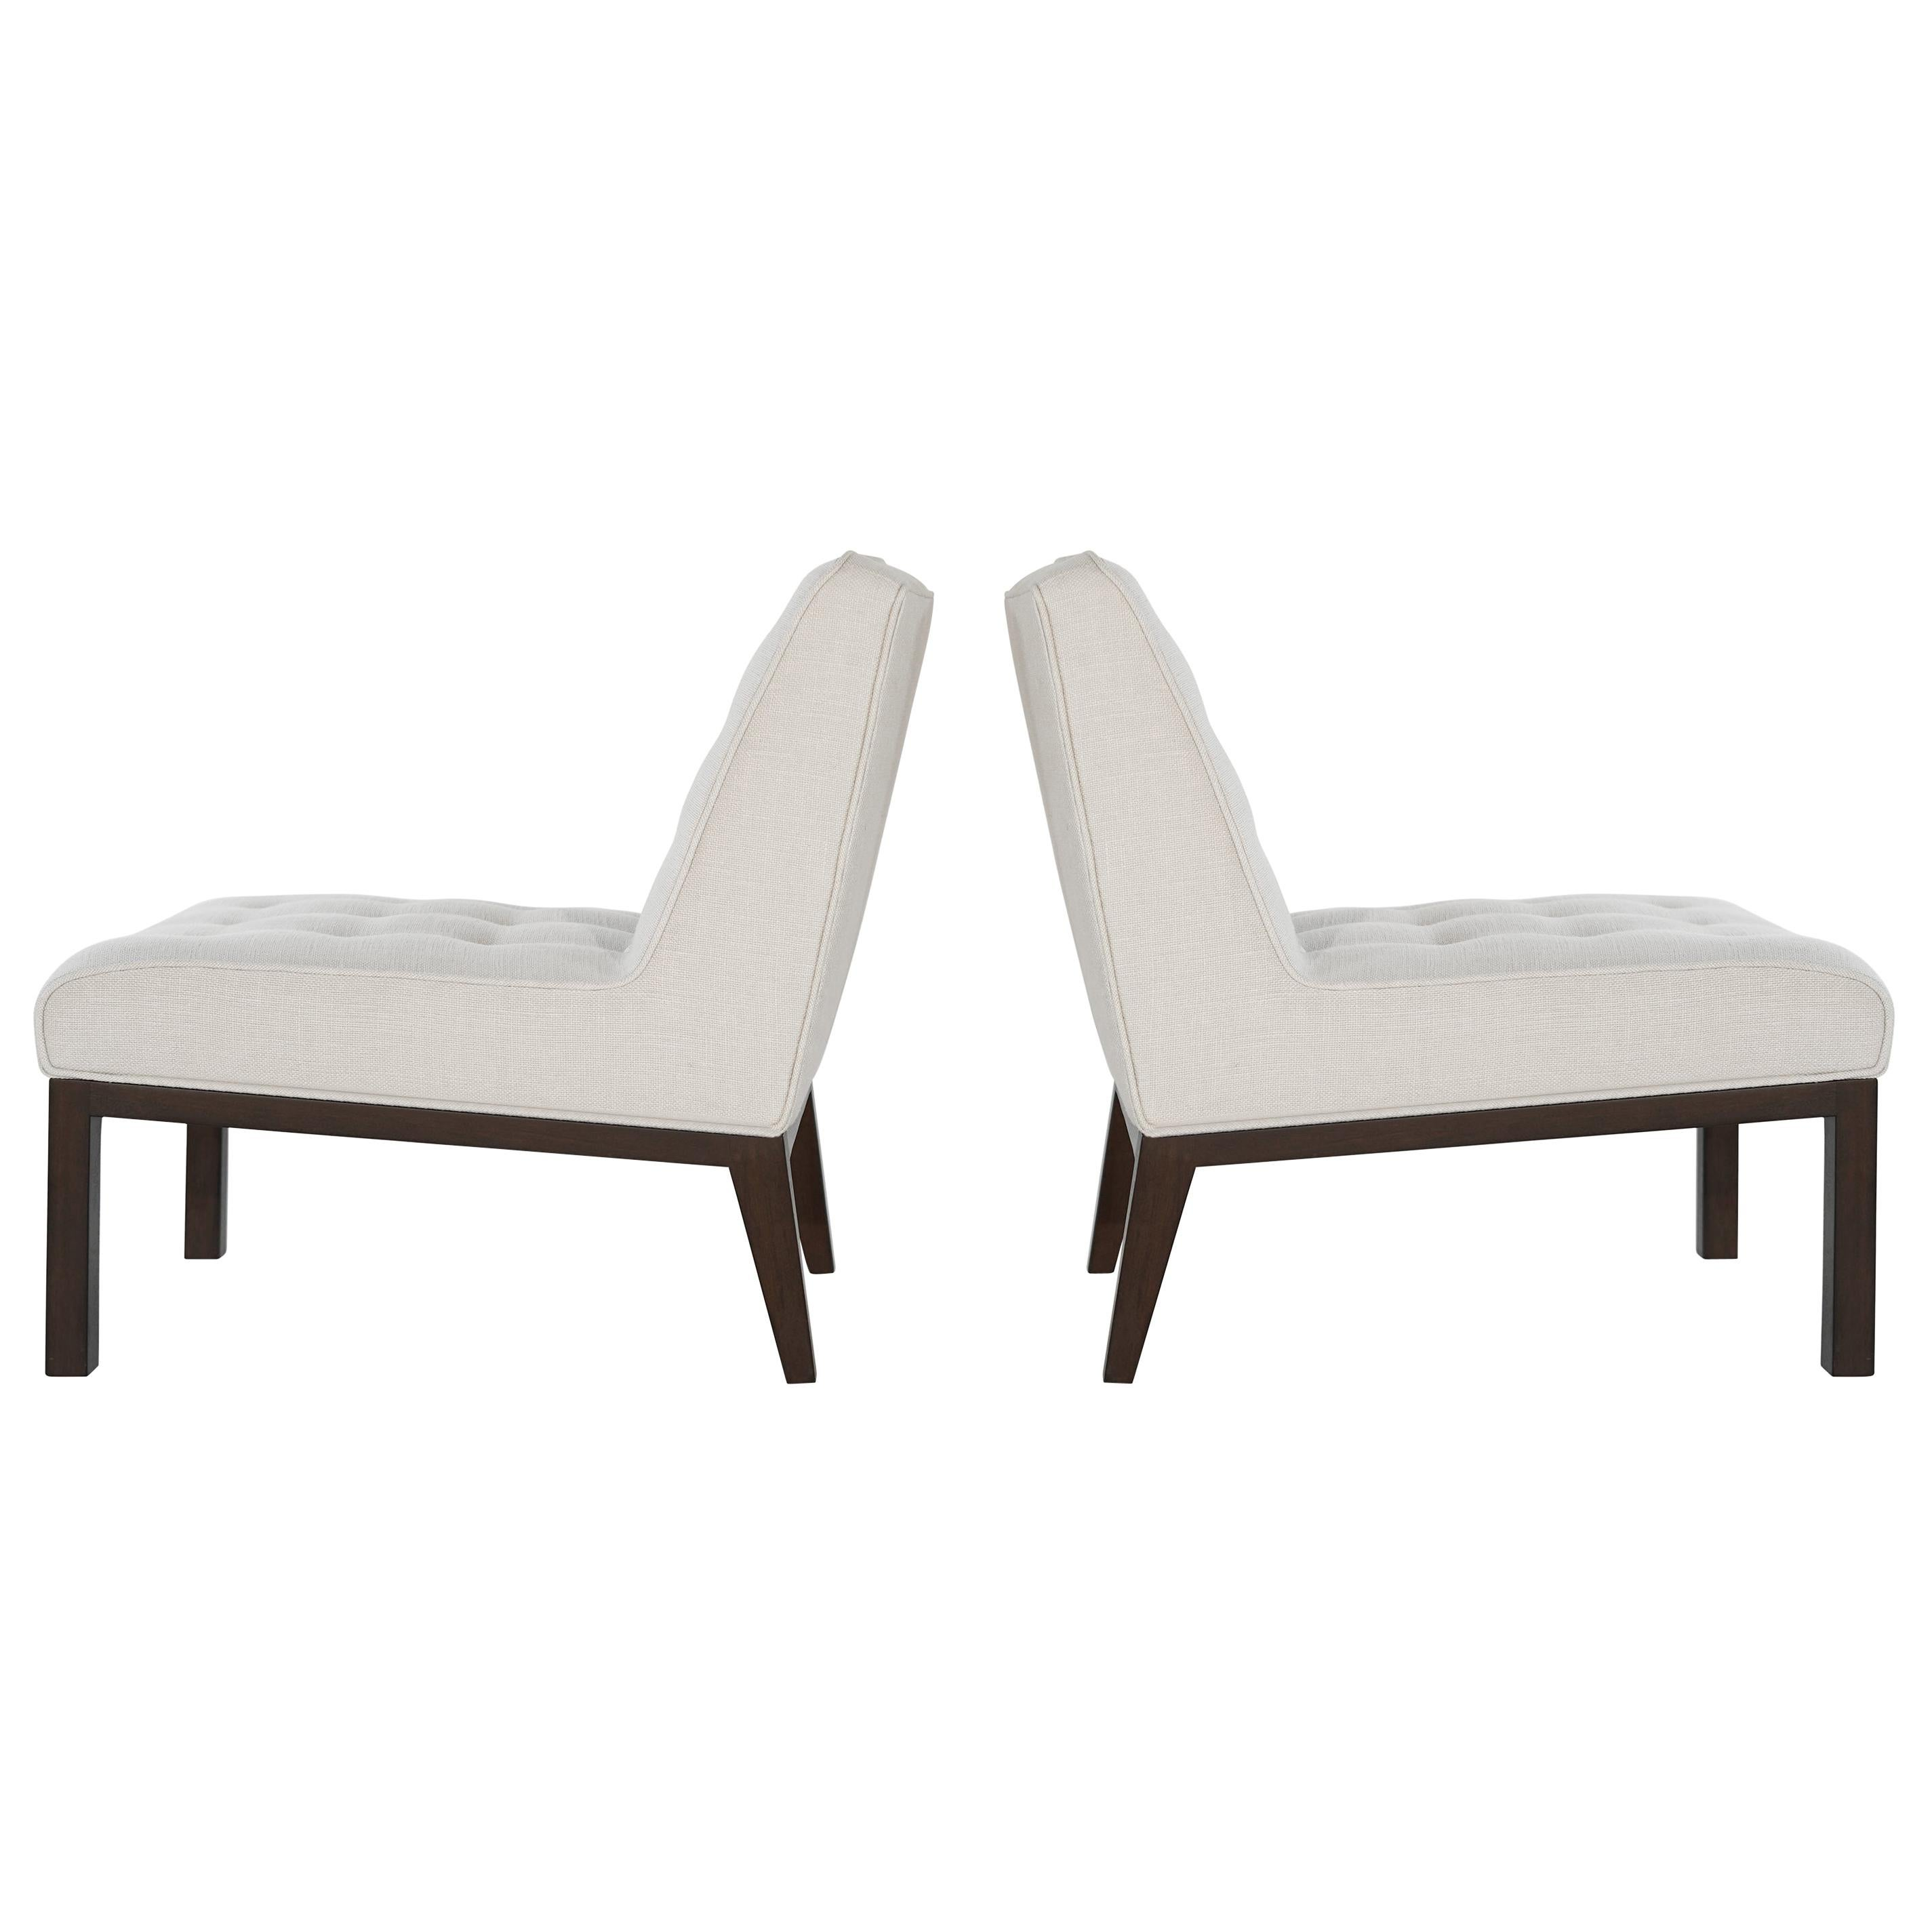 Classic Slipper Chairs by Edward Wormley for Dunbar, 1950s